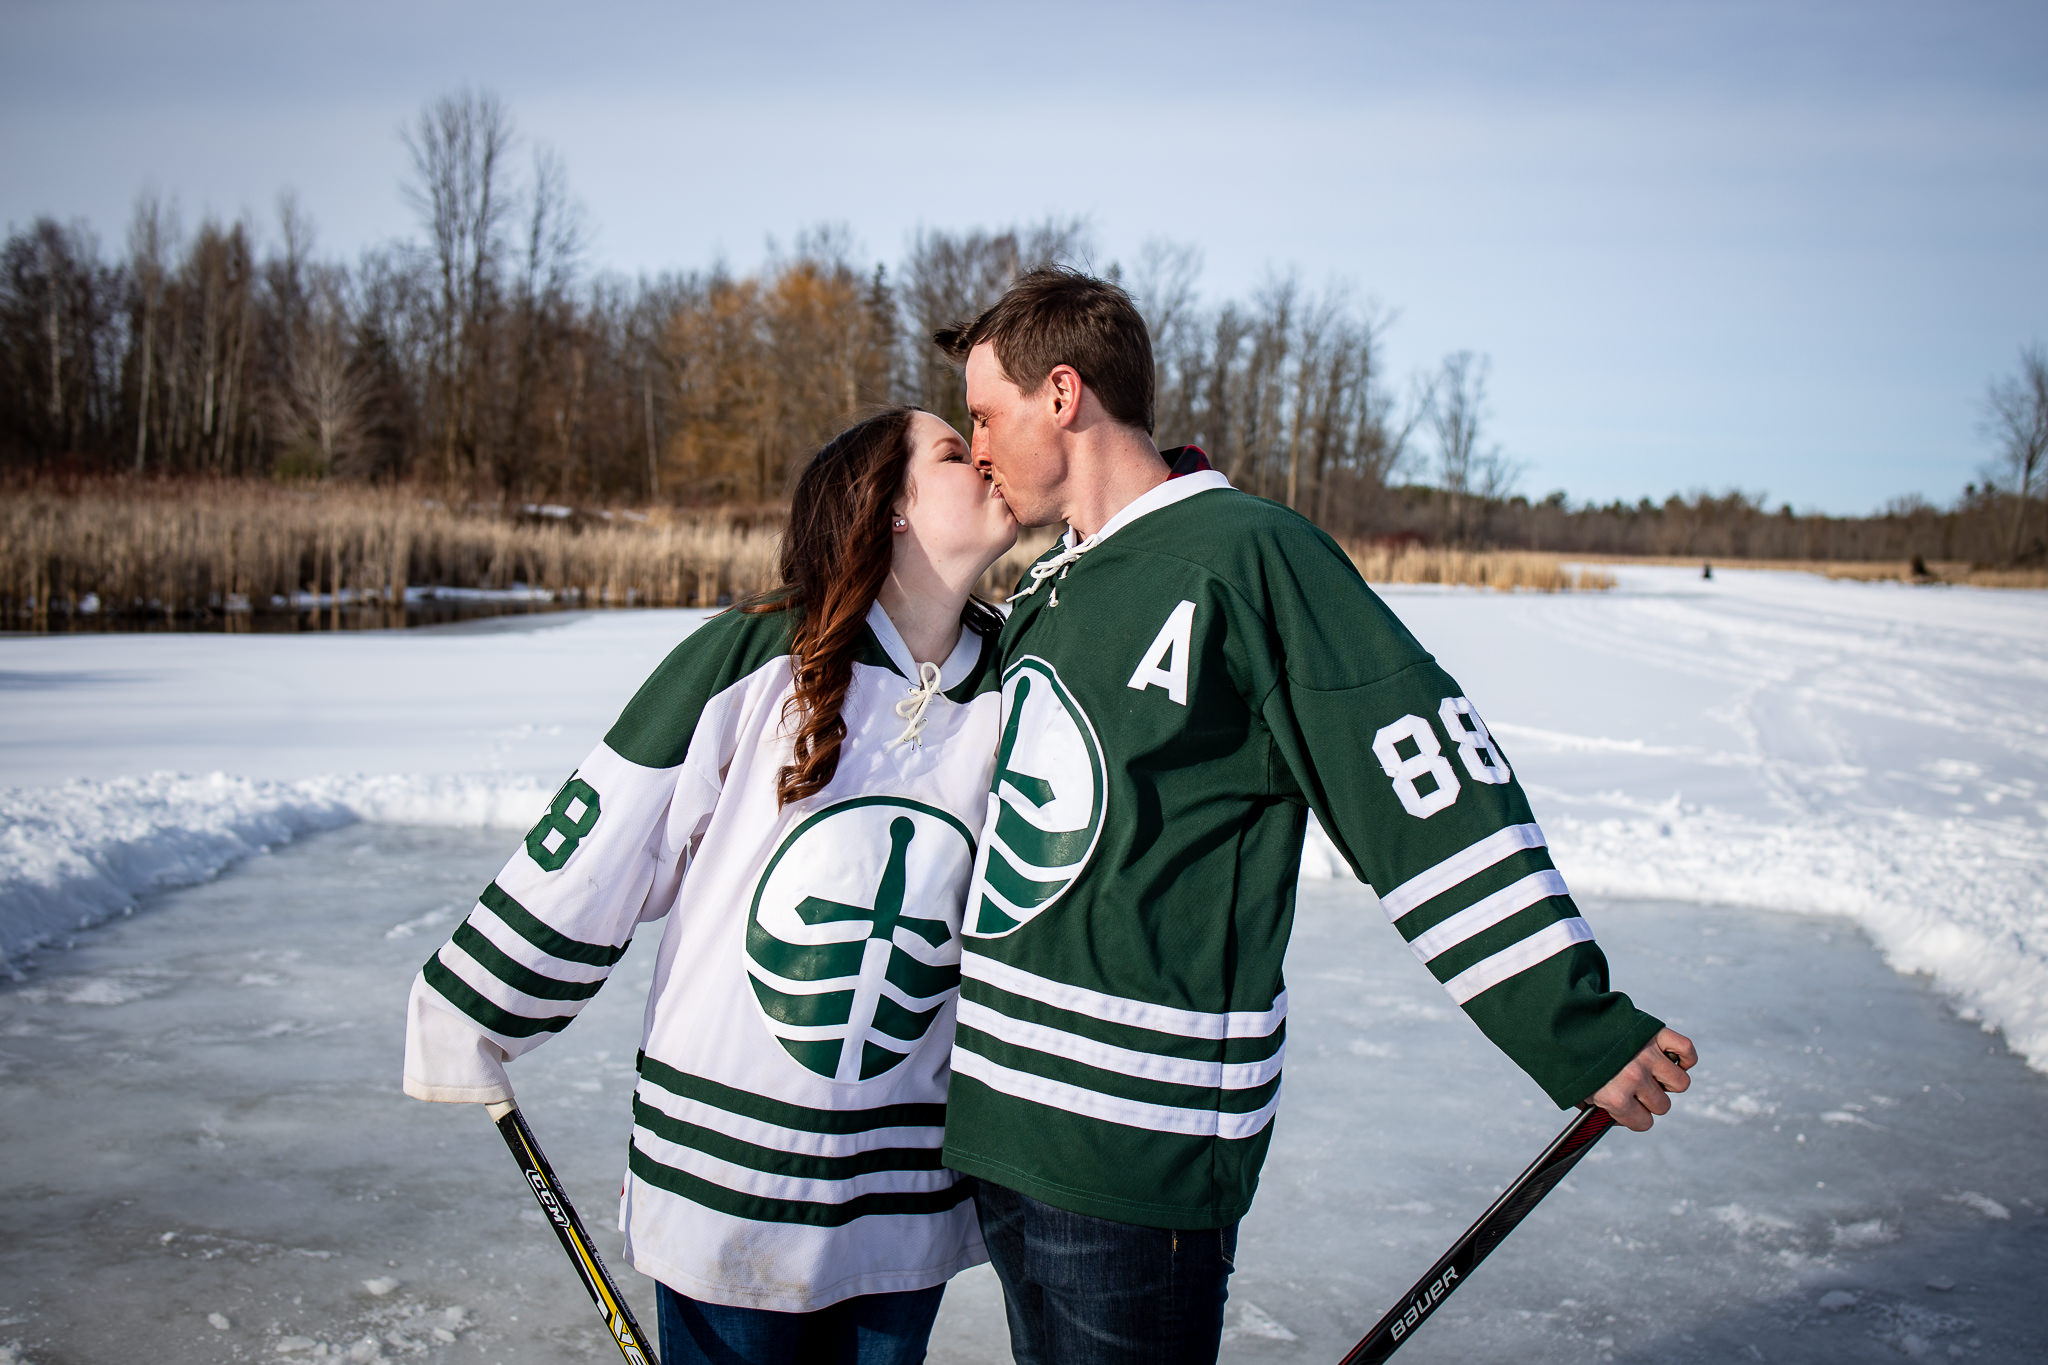 ice-skating-hockey-engagement-photos-8.jpg